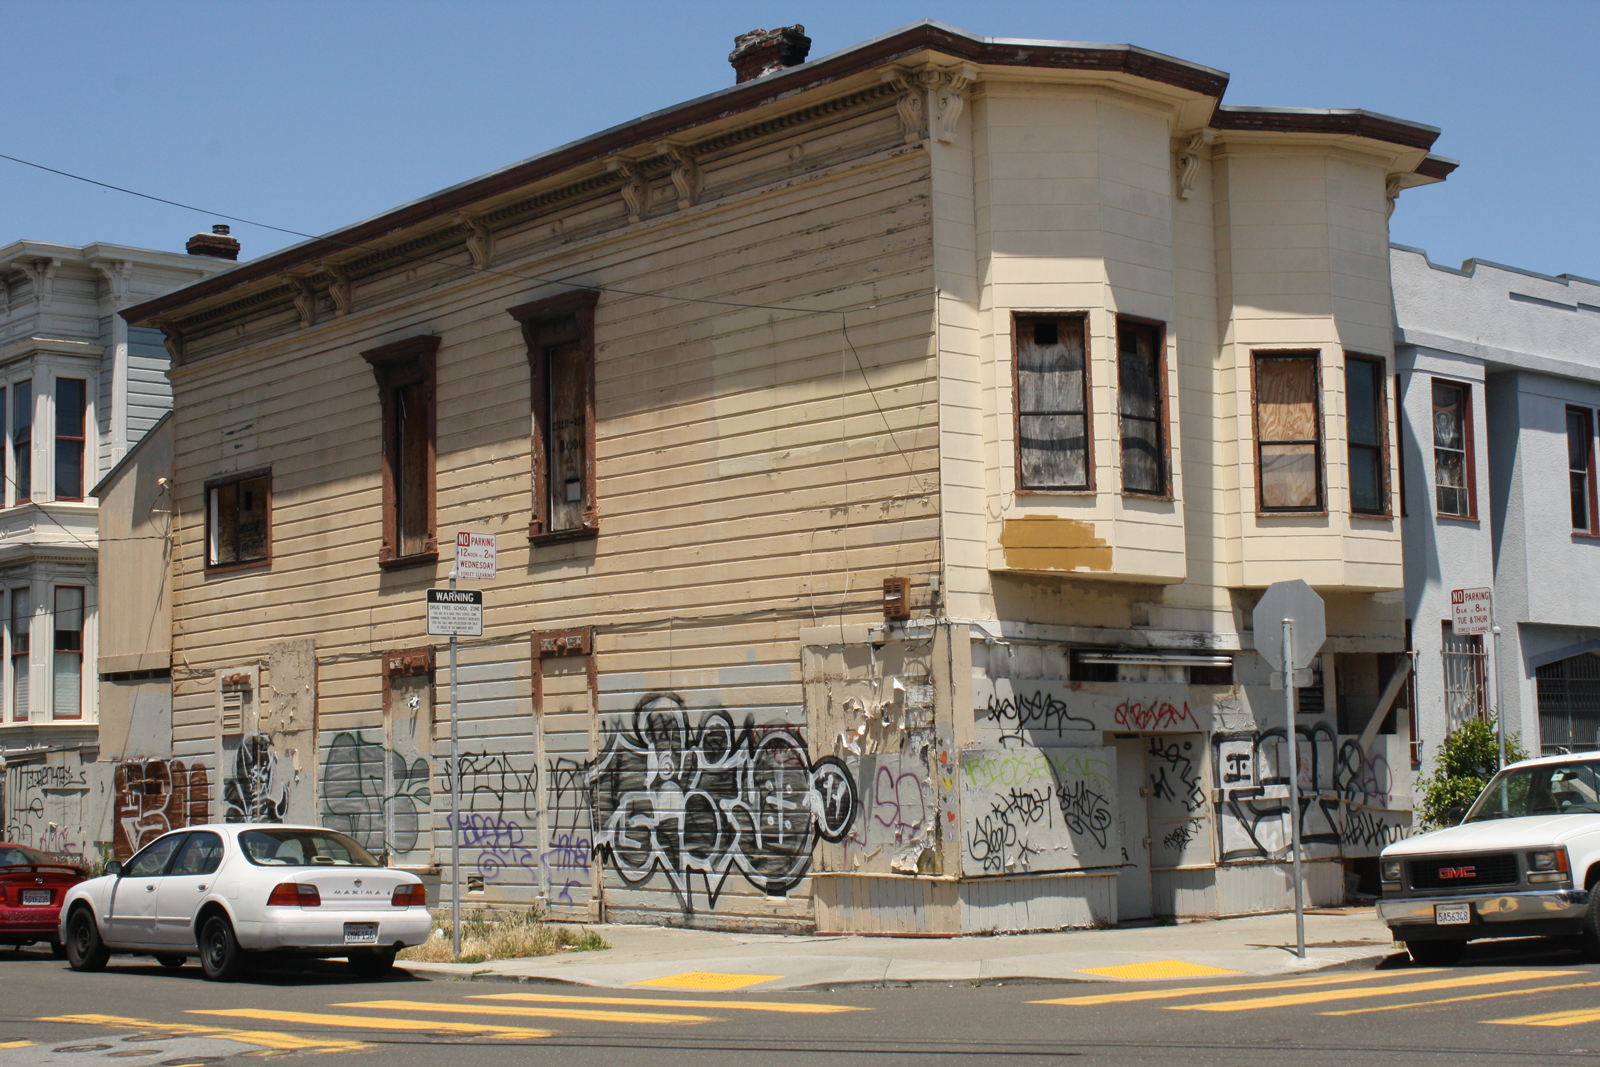 Nearly a Decade and Two Ordinances Later, a Blighted Building Remains